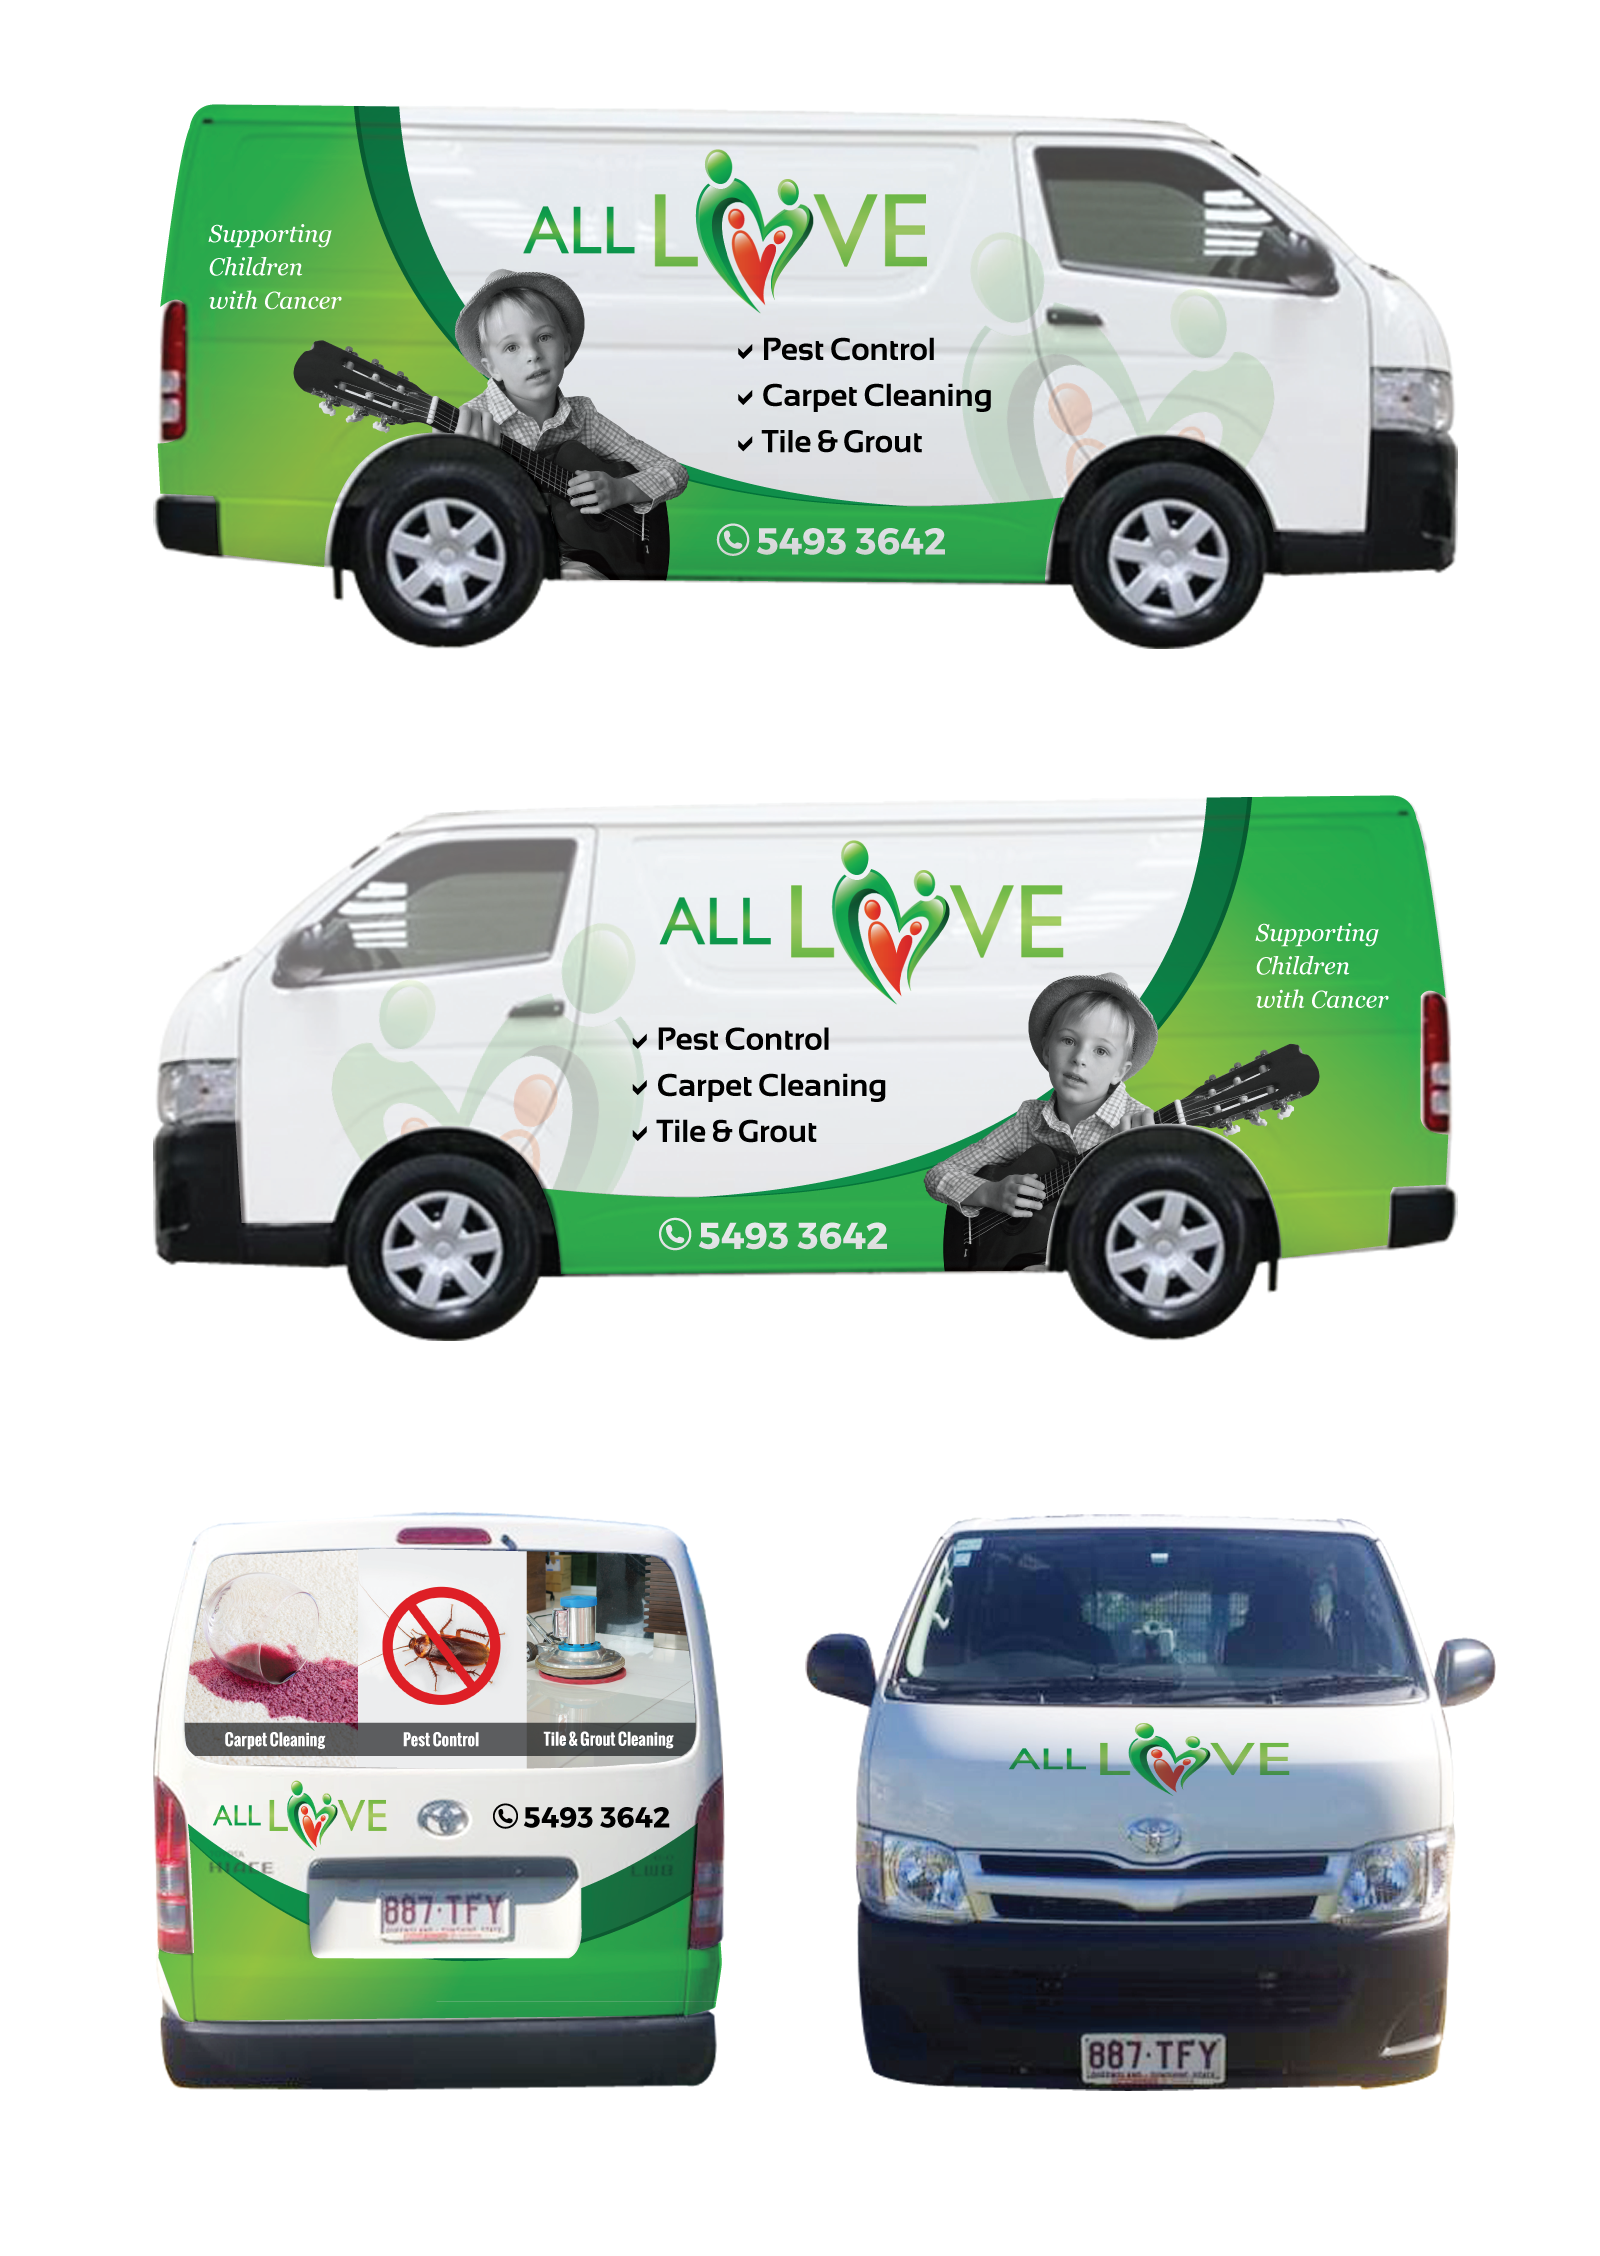 Vehicle Wrap For Pest Control & Carpet Cleaning Company - Cleaning